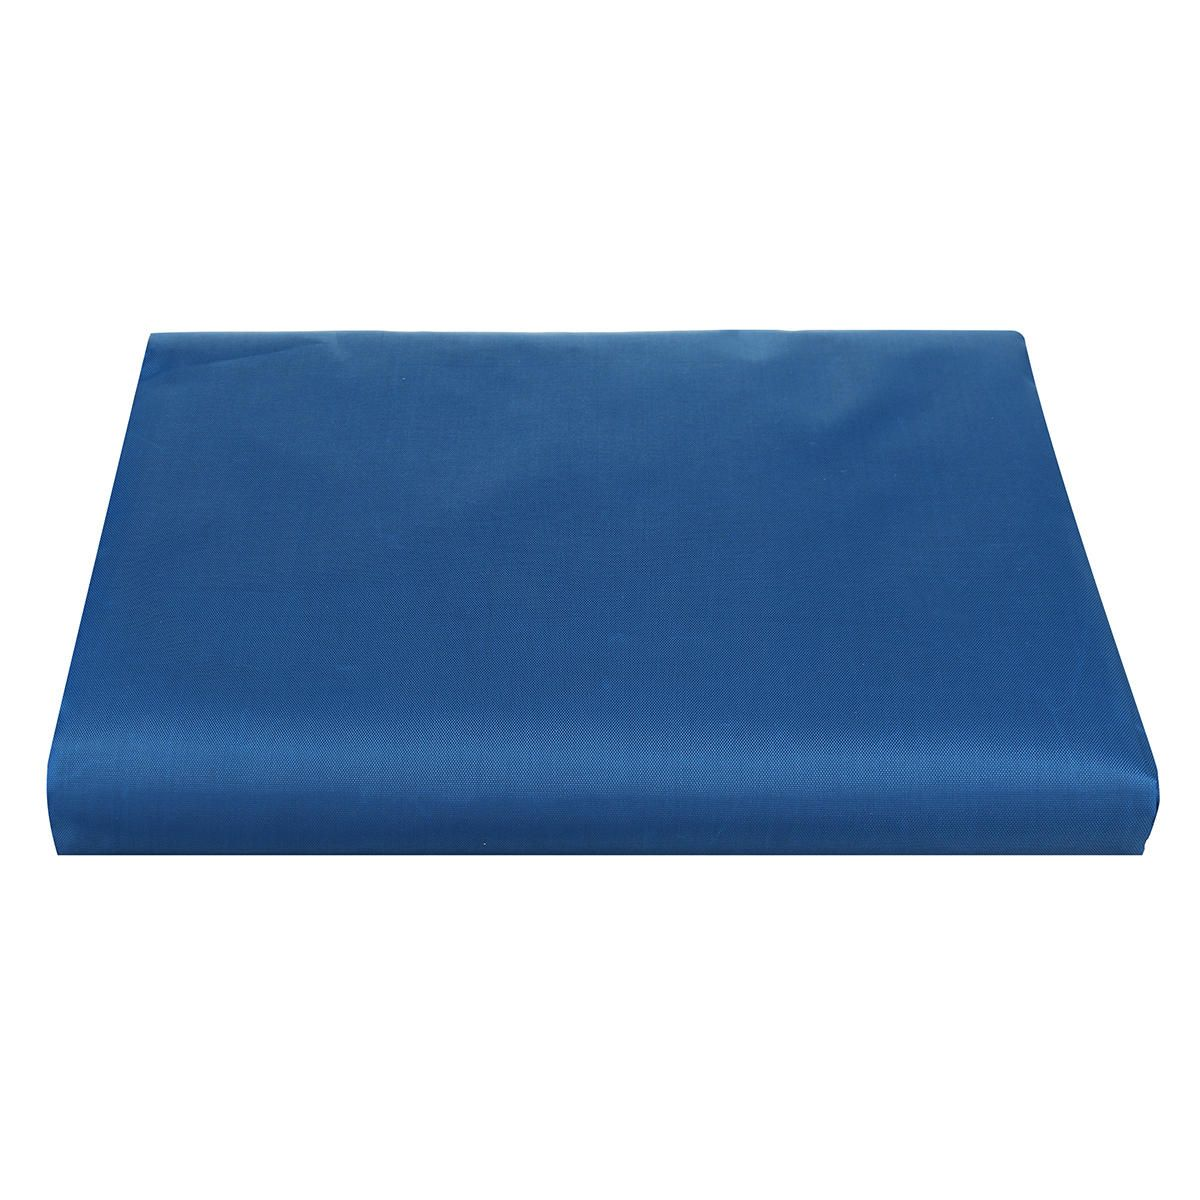 TRX US$27.80 Pings Pong Table Storage Cover Table Tennis Sheet Indoor Outdoor Protection Waterproof  Dustproof Cover